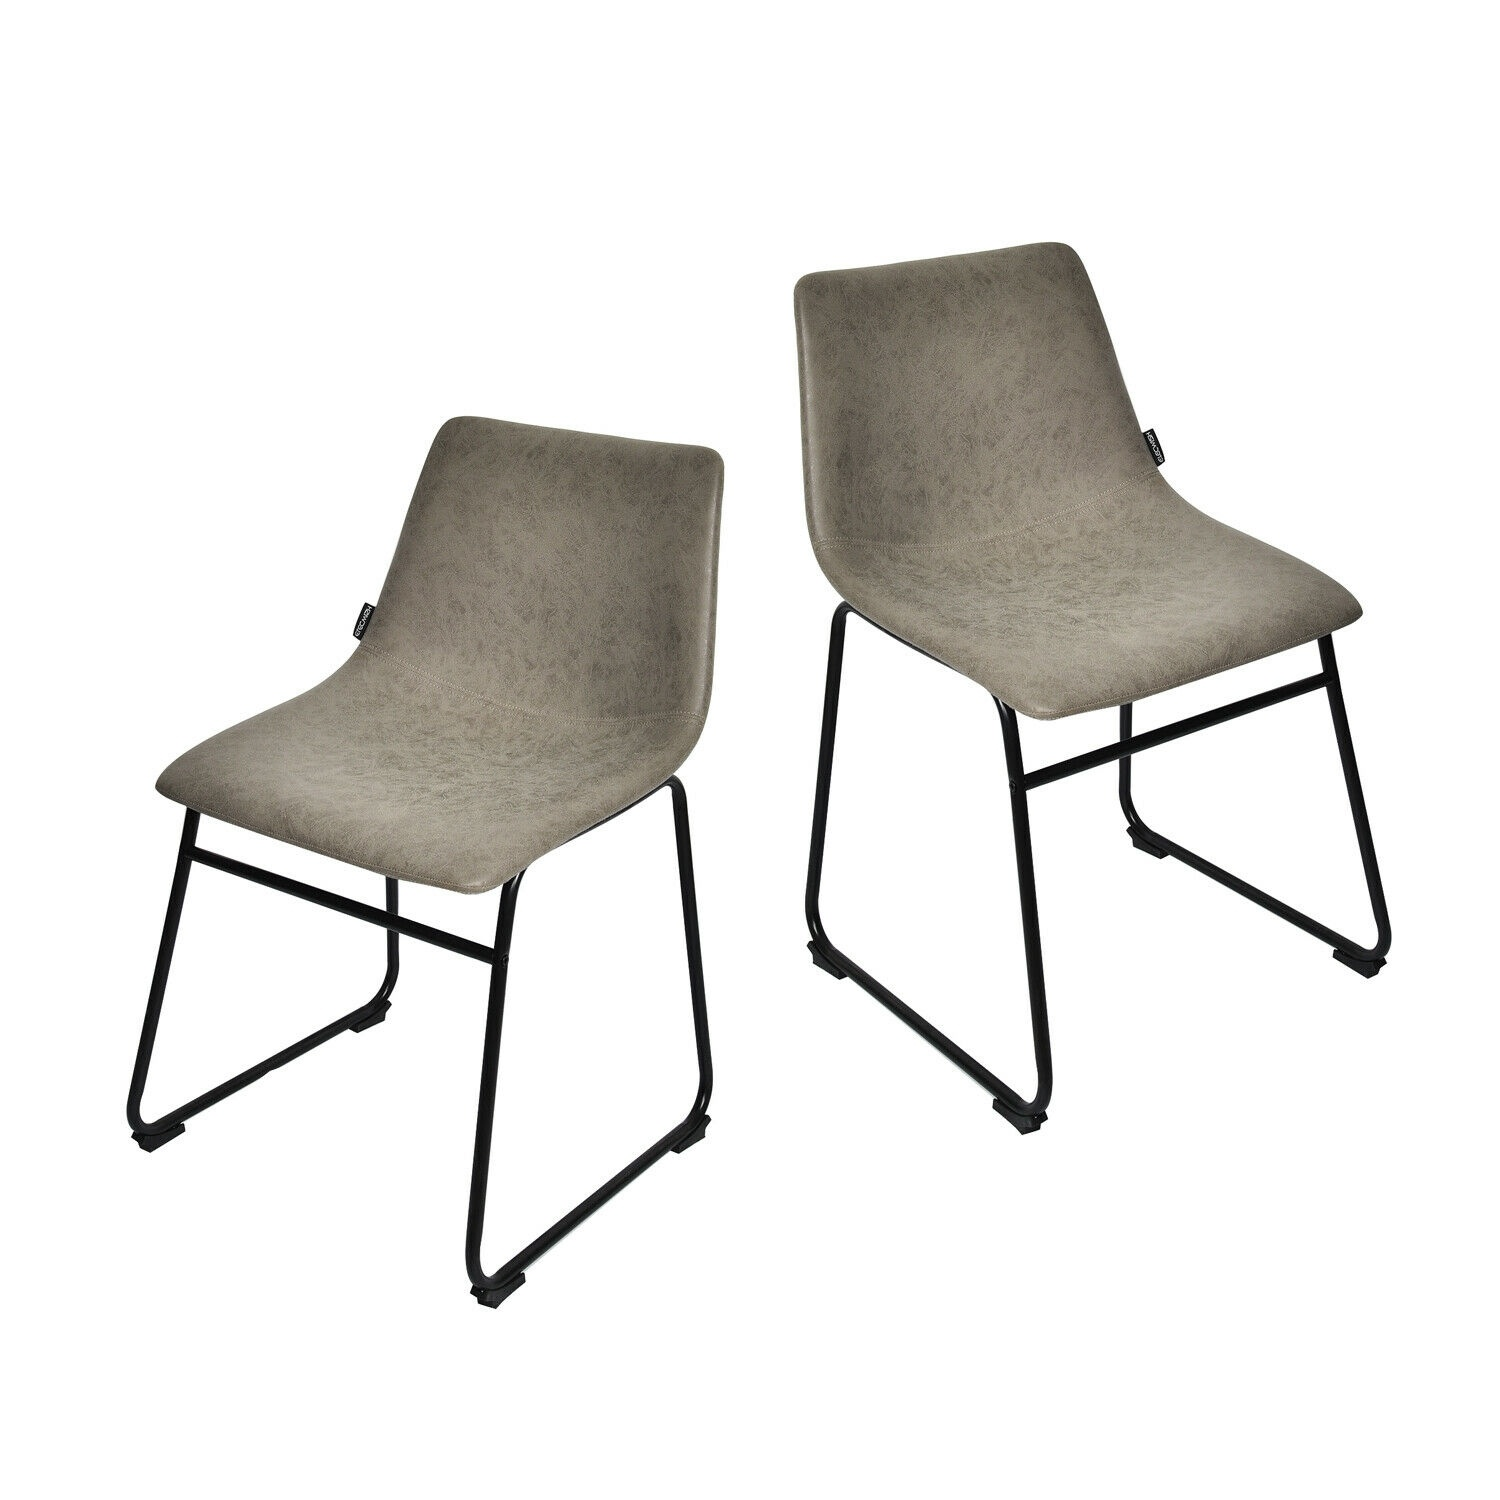 Set Of 2 Vintage Bar Stools Dining Pub Chair Armless PU Leather Kitchen Bistro